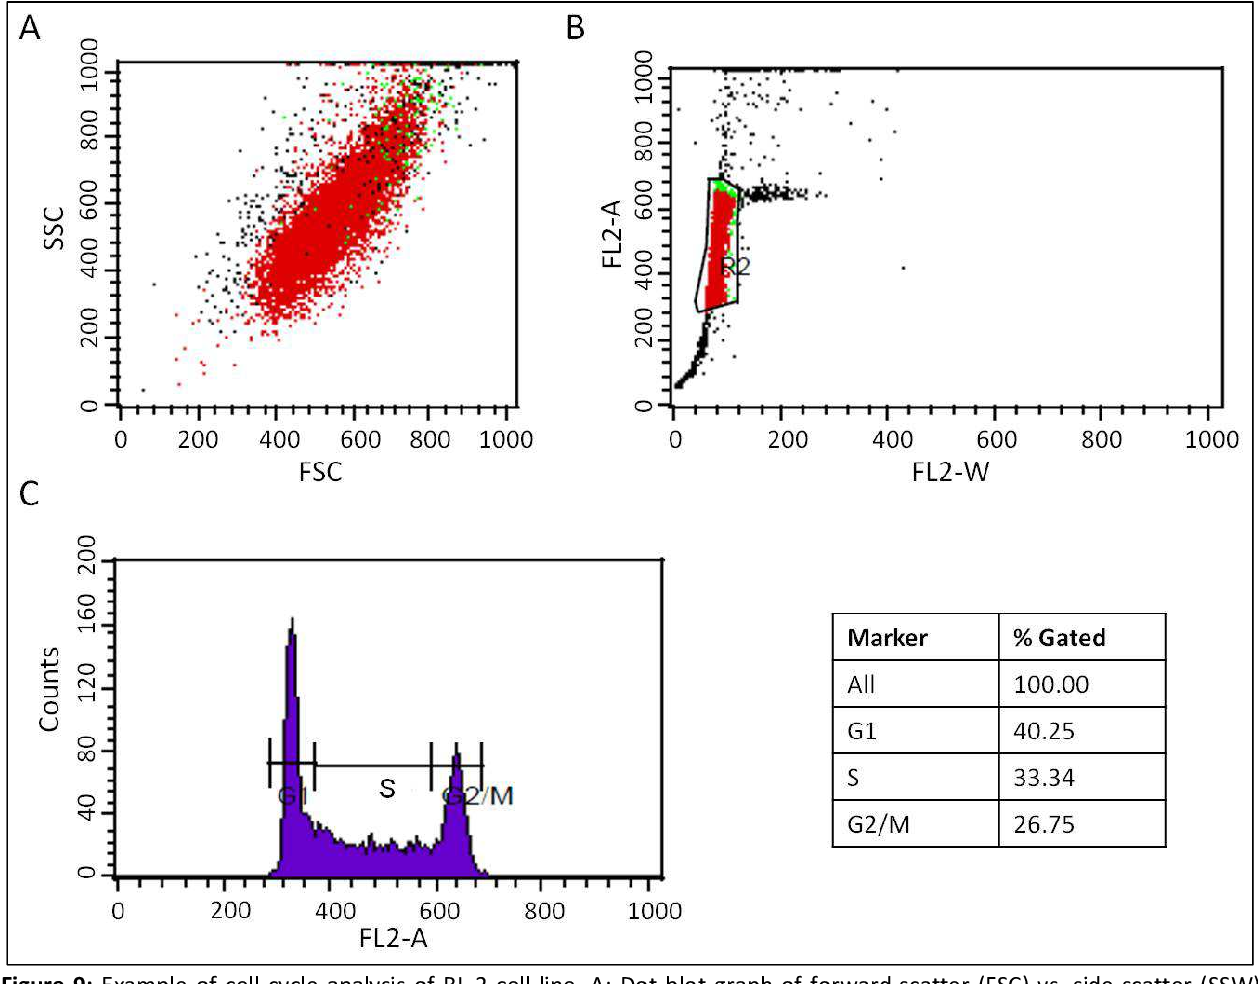 Figure 9: Example of cell cycle analysis of BL-2 cell line. A: Dot blot graph of forward-scatter (FSC) vs. side-scatter (SSW) signals of the cell population. B: Depicts the two-parameter dot blot of FL2-W vs. FL2-A. The gate, depicted here as box with R2 label, contains solely single cells. C: Histogram of FL2-A, representing the relative DNA amount vs. the count of cells (counts). The cell cycle phases are indicated by the respective lines and labeled as G1 (G1-phase), S (S-phase) and G2/M (G2/M-phase). The table shows the amount of cells in the respective cell cycle phases. % Gated refers to the amount of cells gated in G1-, S- and G2/M-phases in the histogram. FL2-W, fluorescence channel 2 width; FL2-A, fluorescence channel 2 area; counts, number of cells.